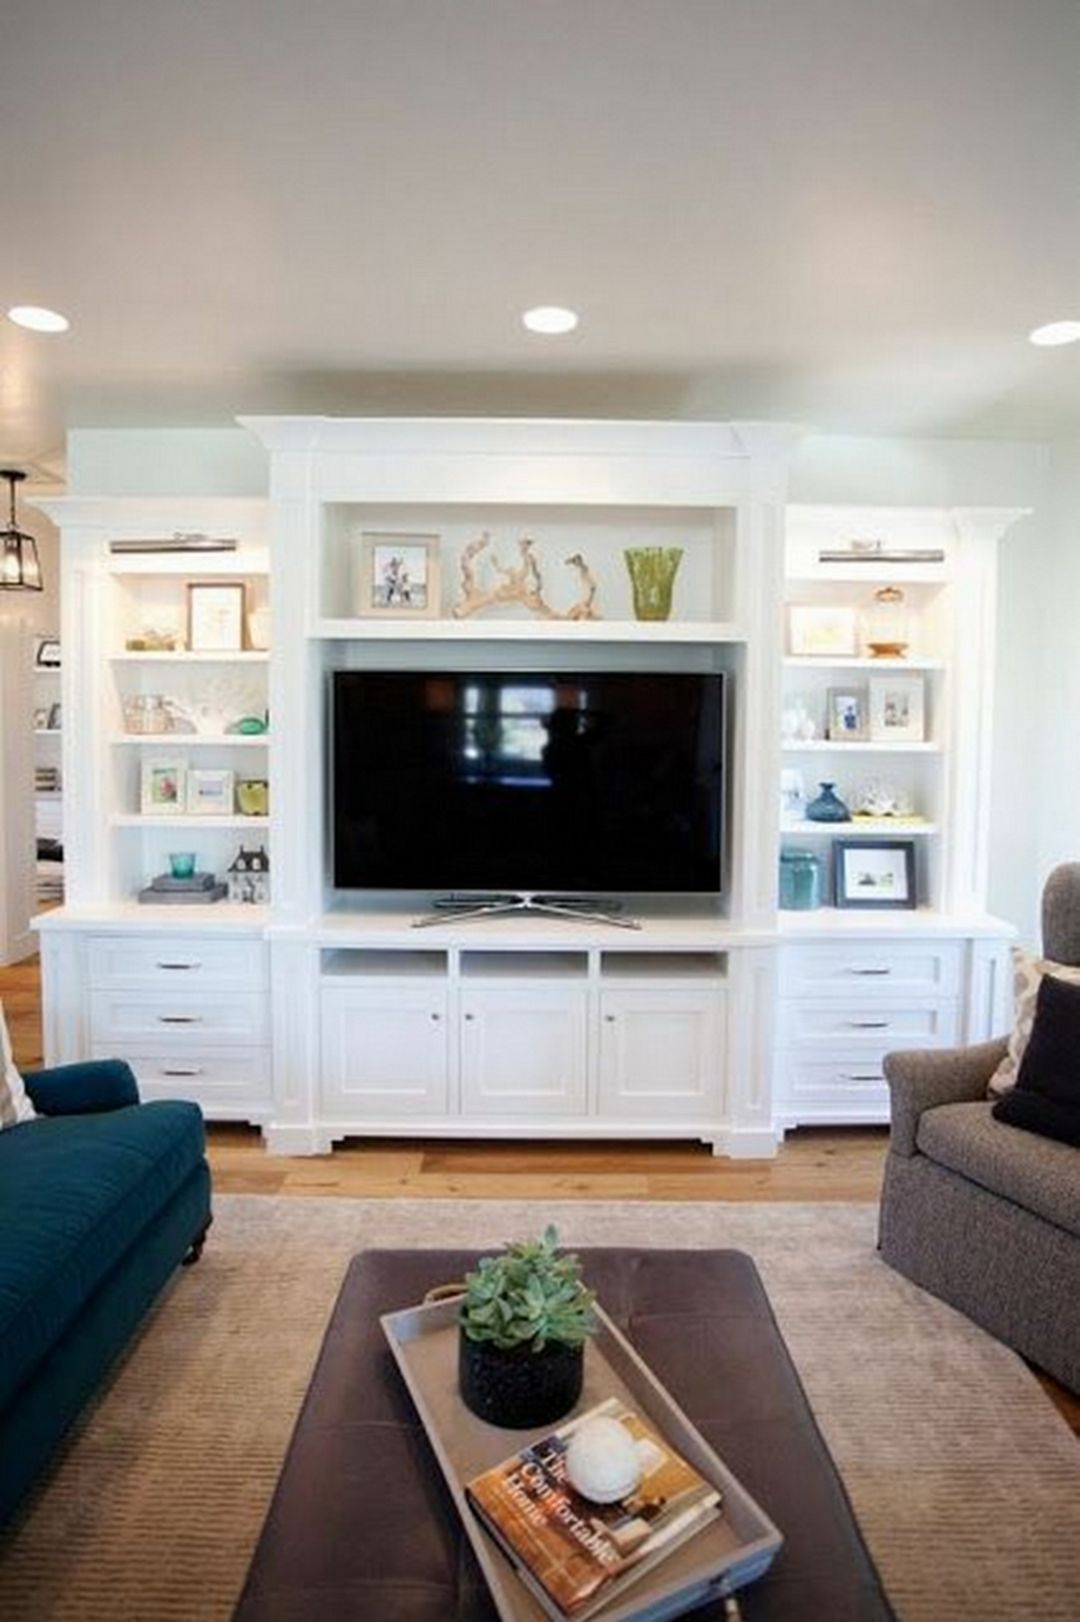 15 Best Shelves Entertainment Center Design You Have To Know Living Room Entertainment Center Home Living Room Entertainment